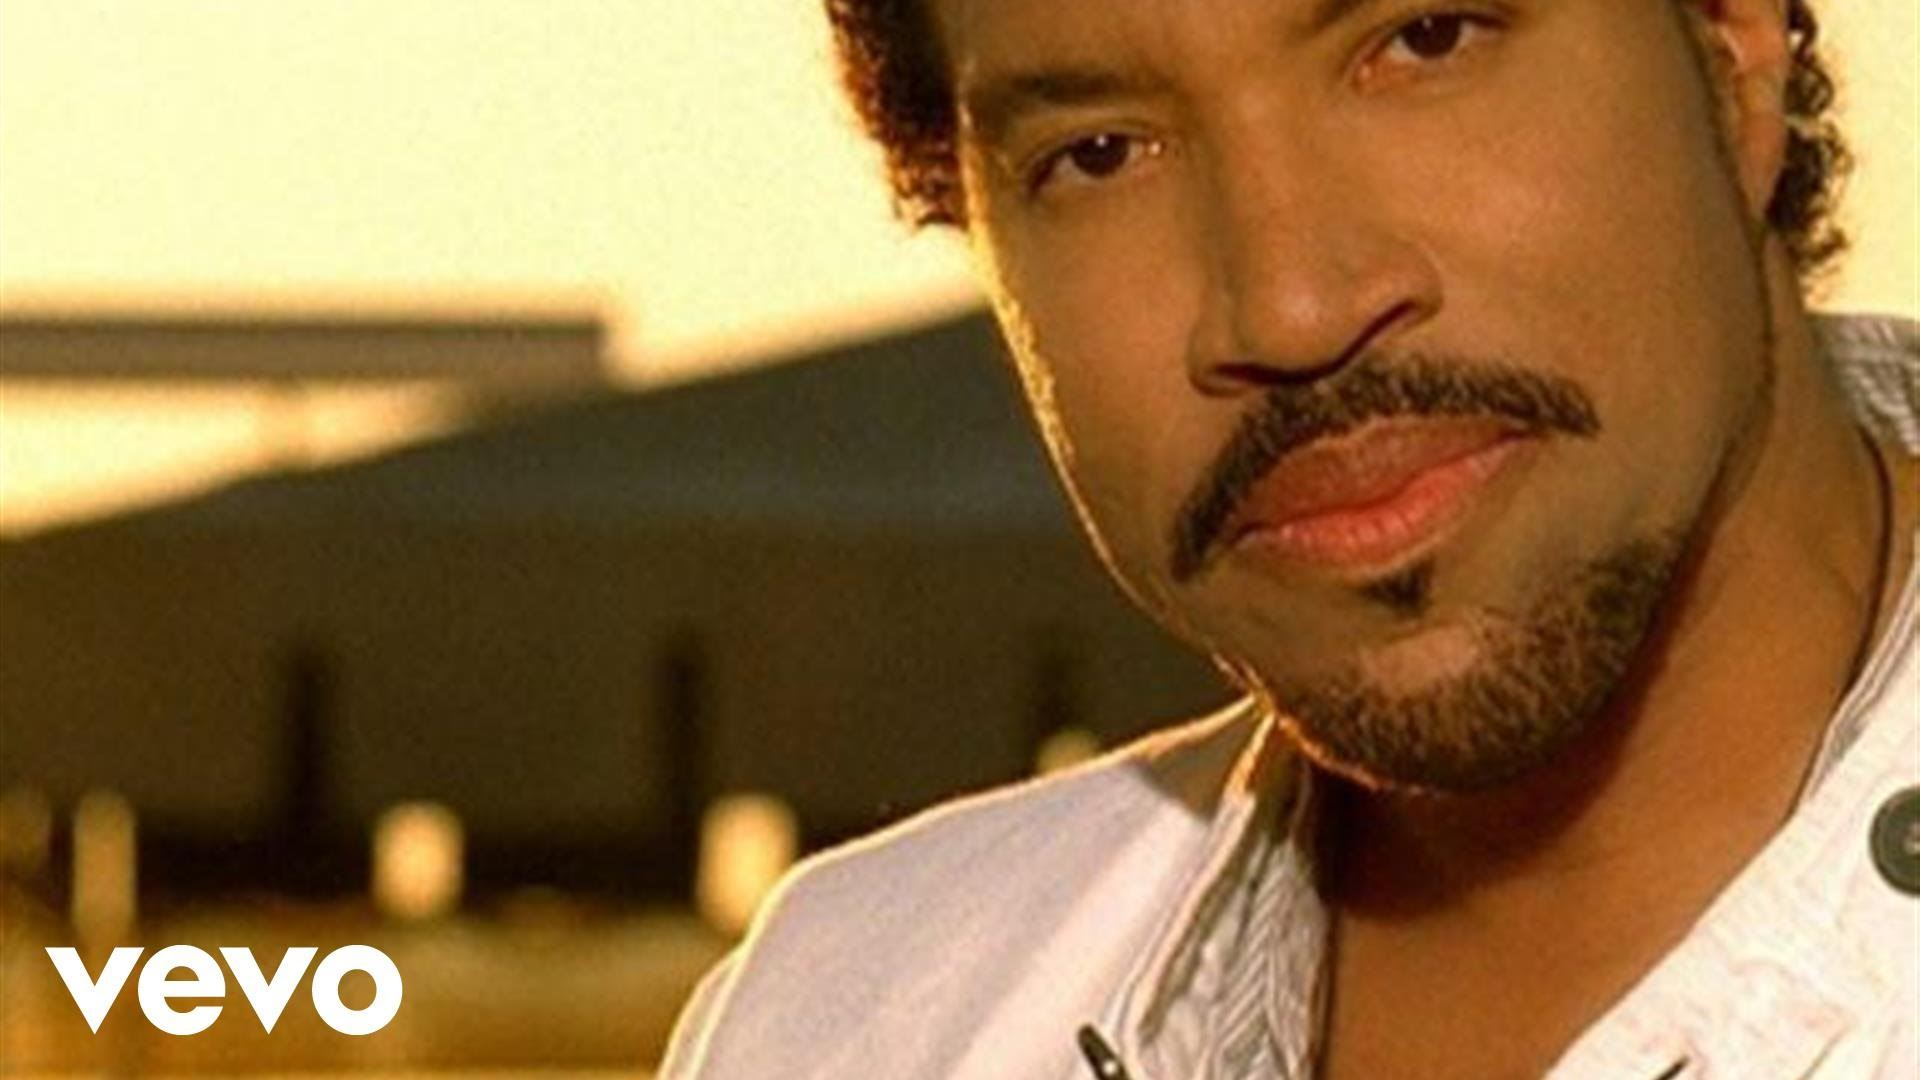 lionelrichie_justgo Screencap